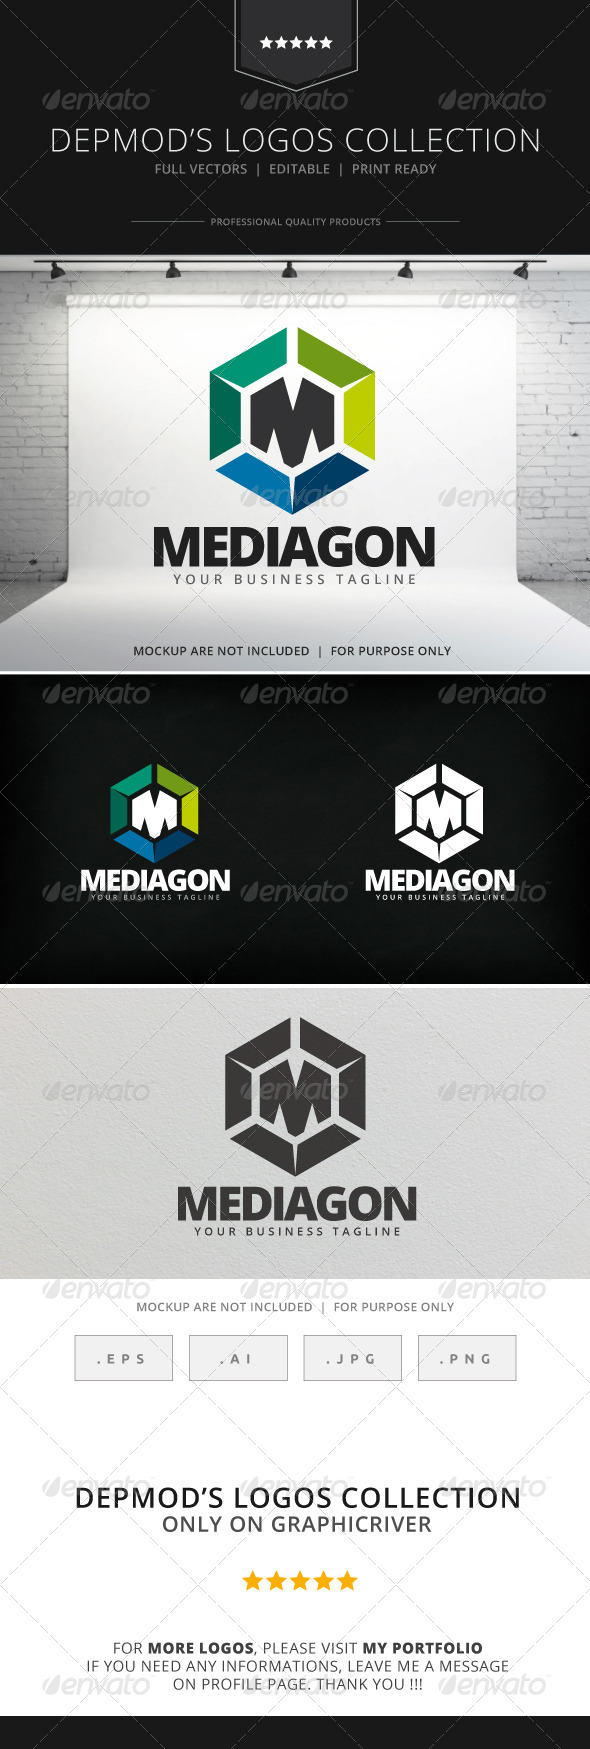 GraphicRiver Mediagon Logo 7907237